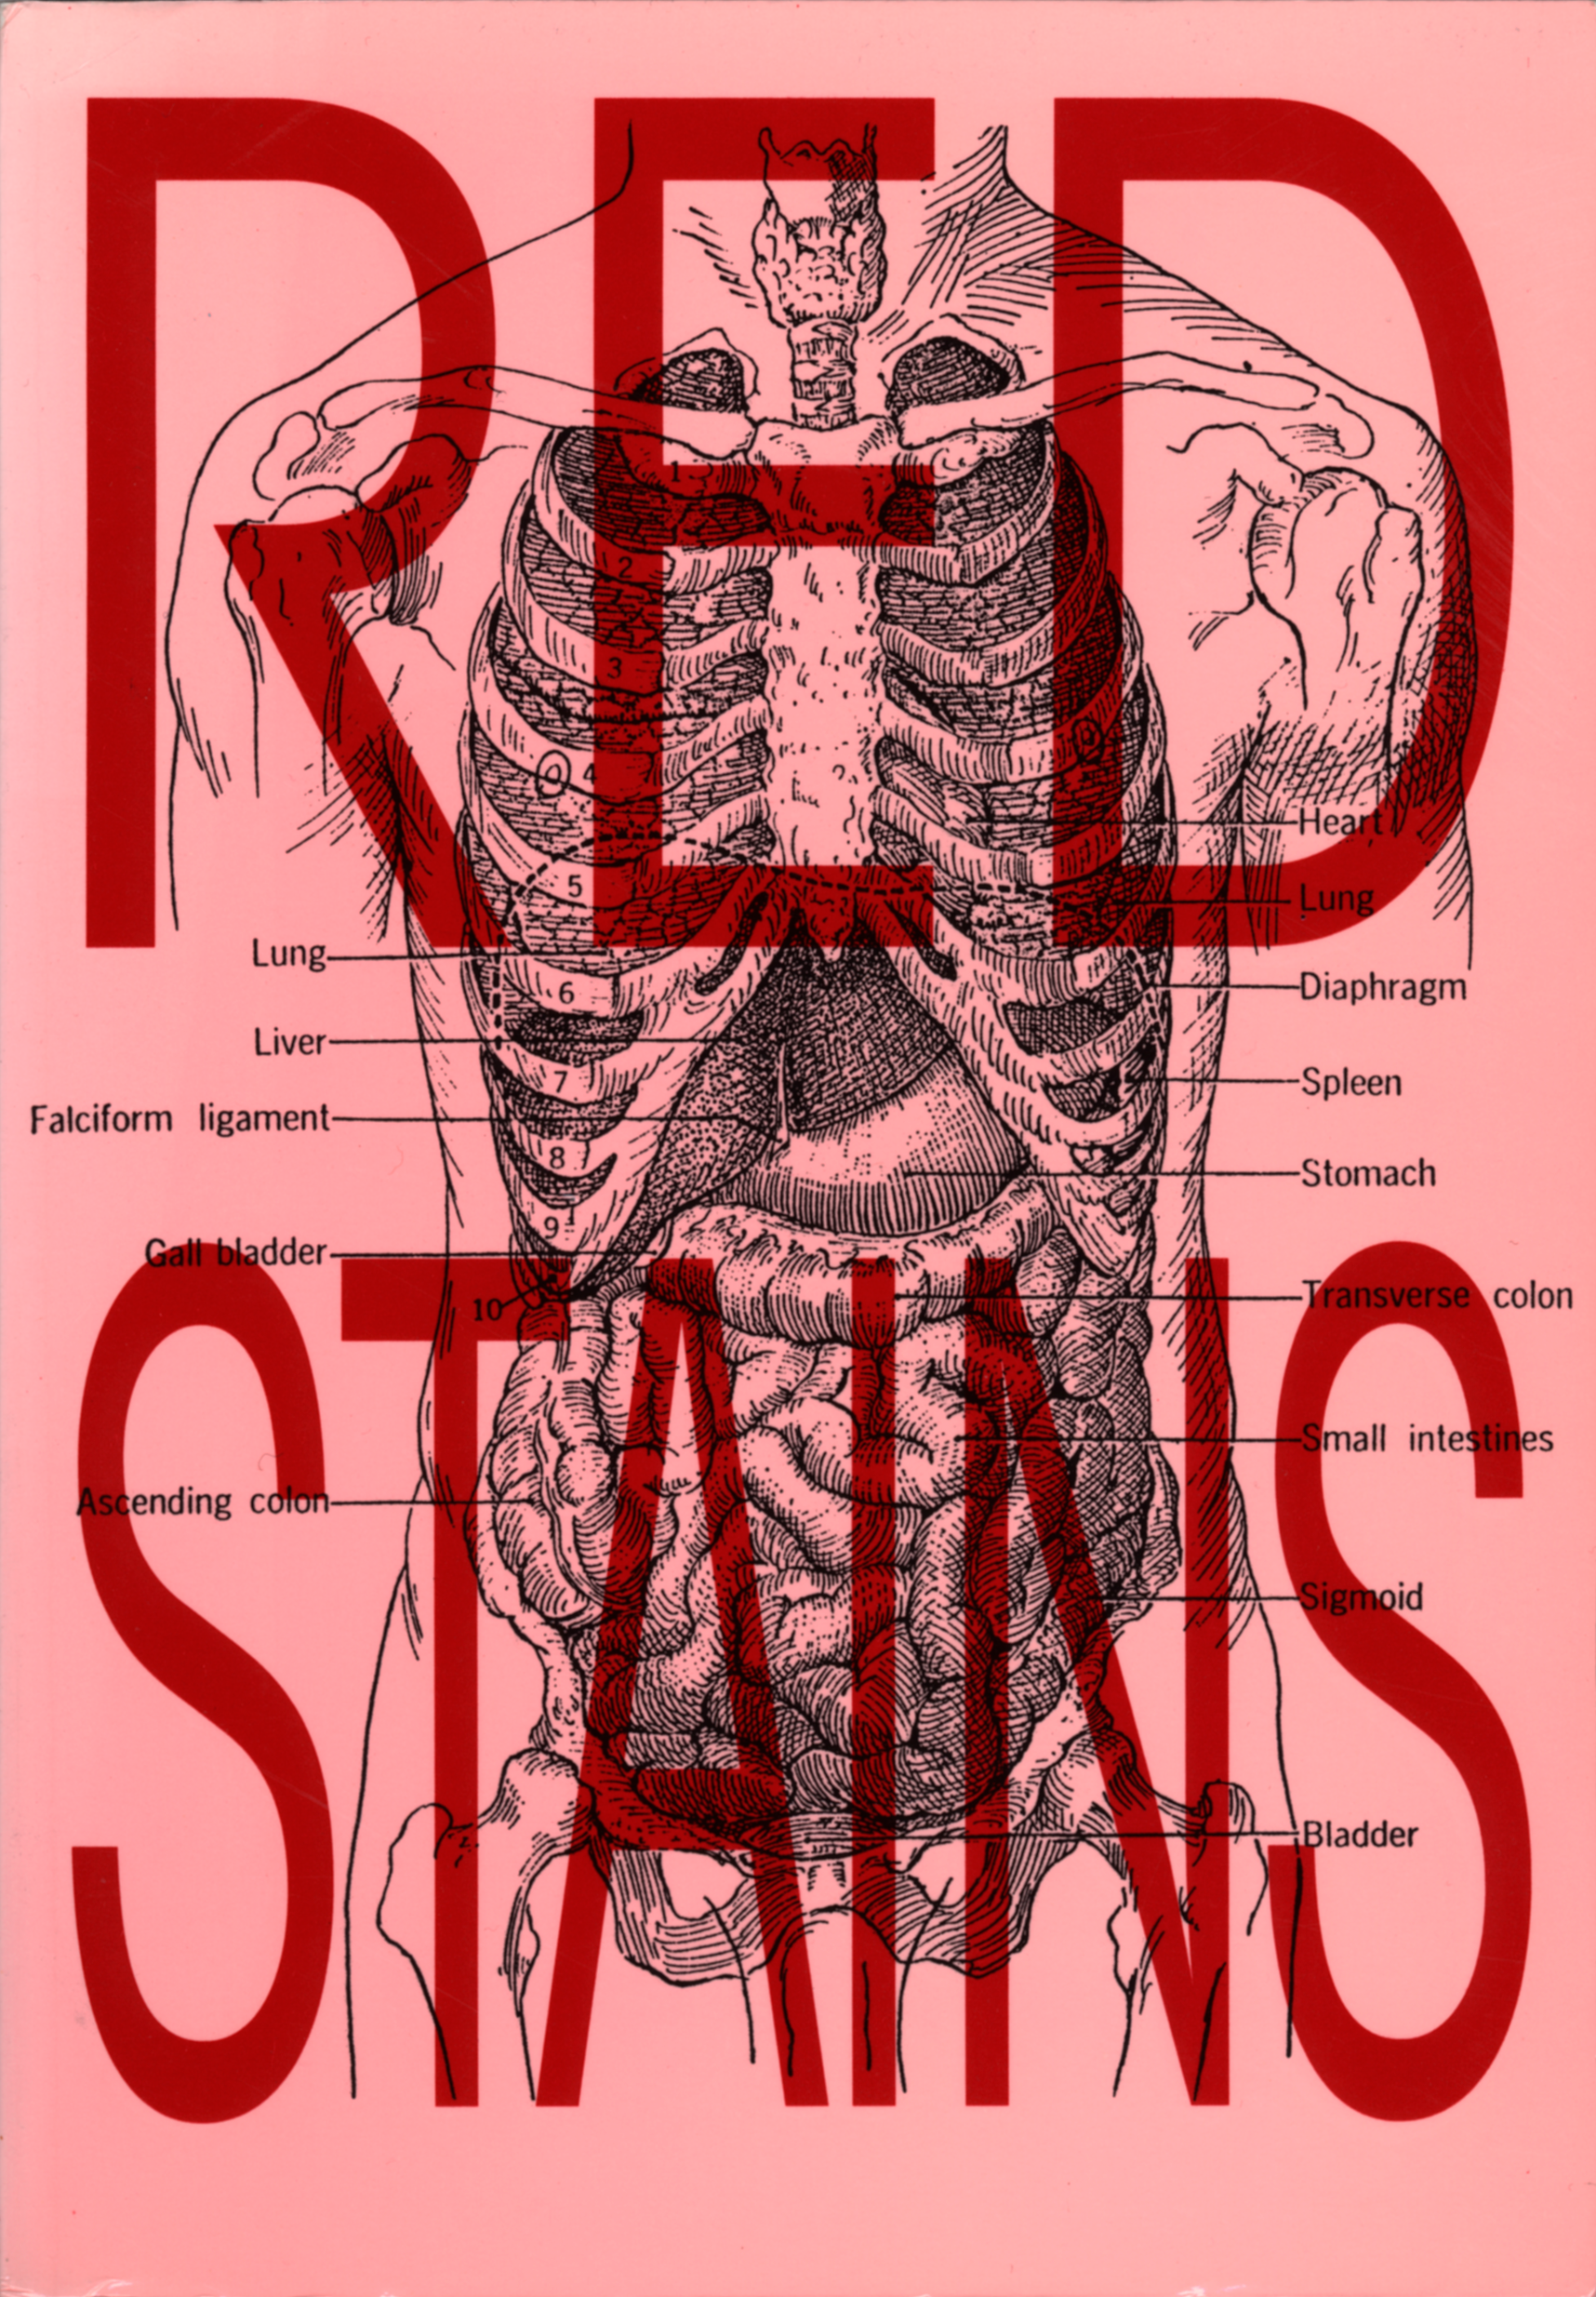 Red Stains anthology